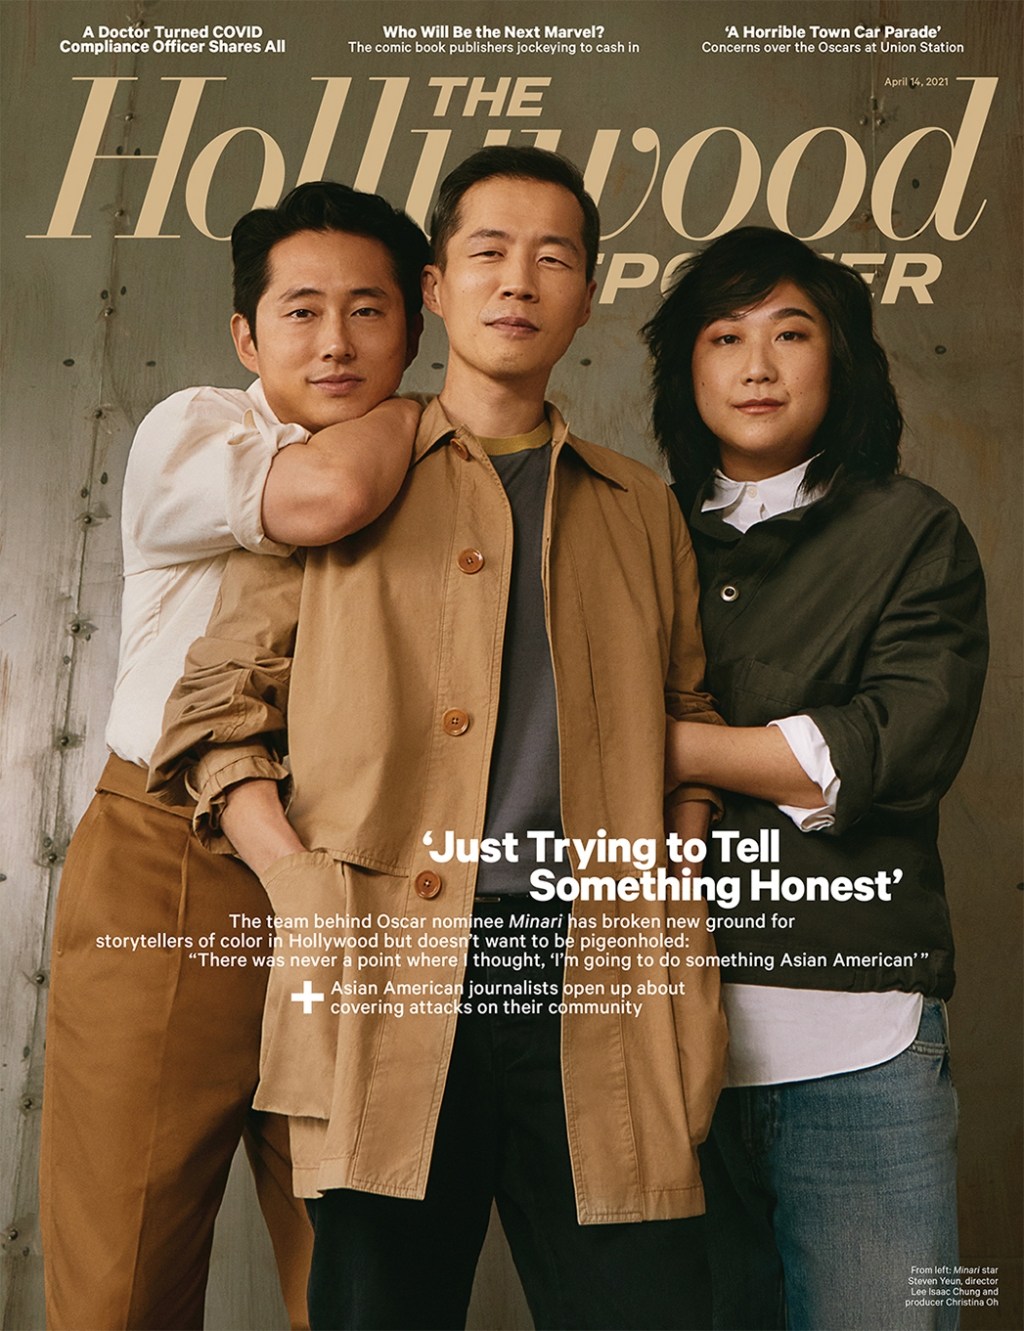 The Hollywood Reporter Issue 14 - Steven Yeun, Isaac Chung, and Christina Oh Photographed by Raul Romo